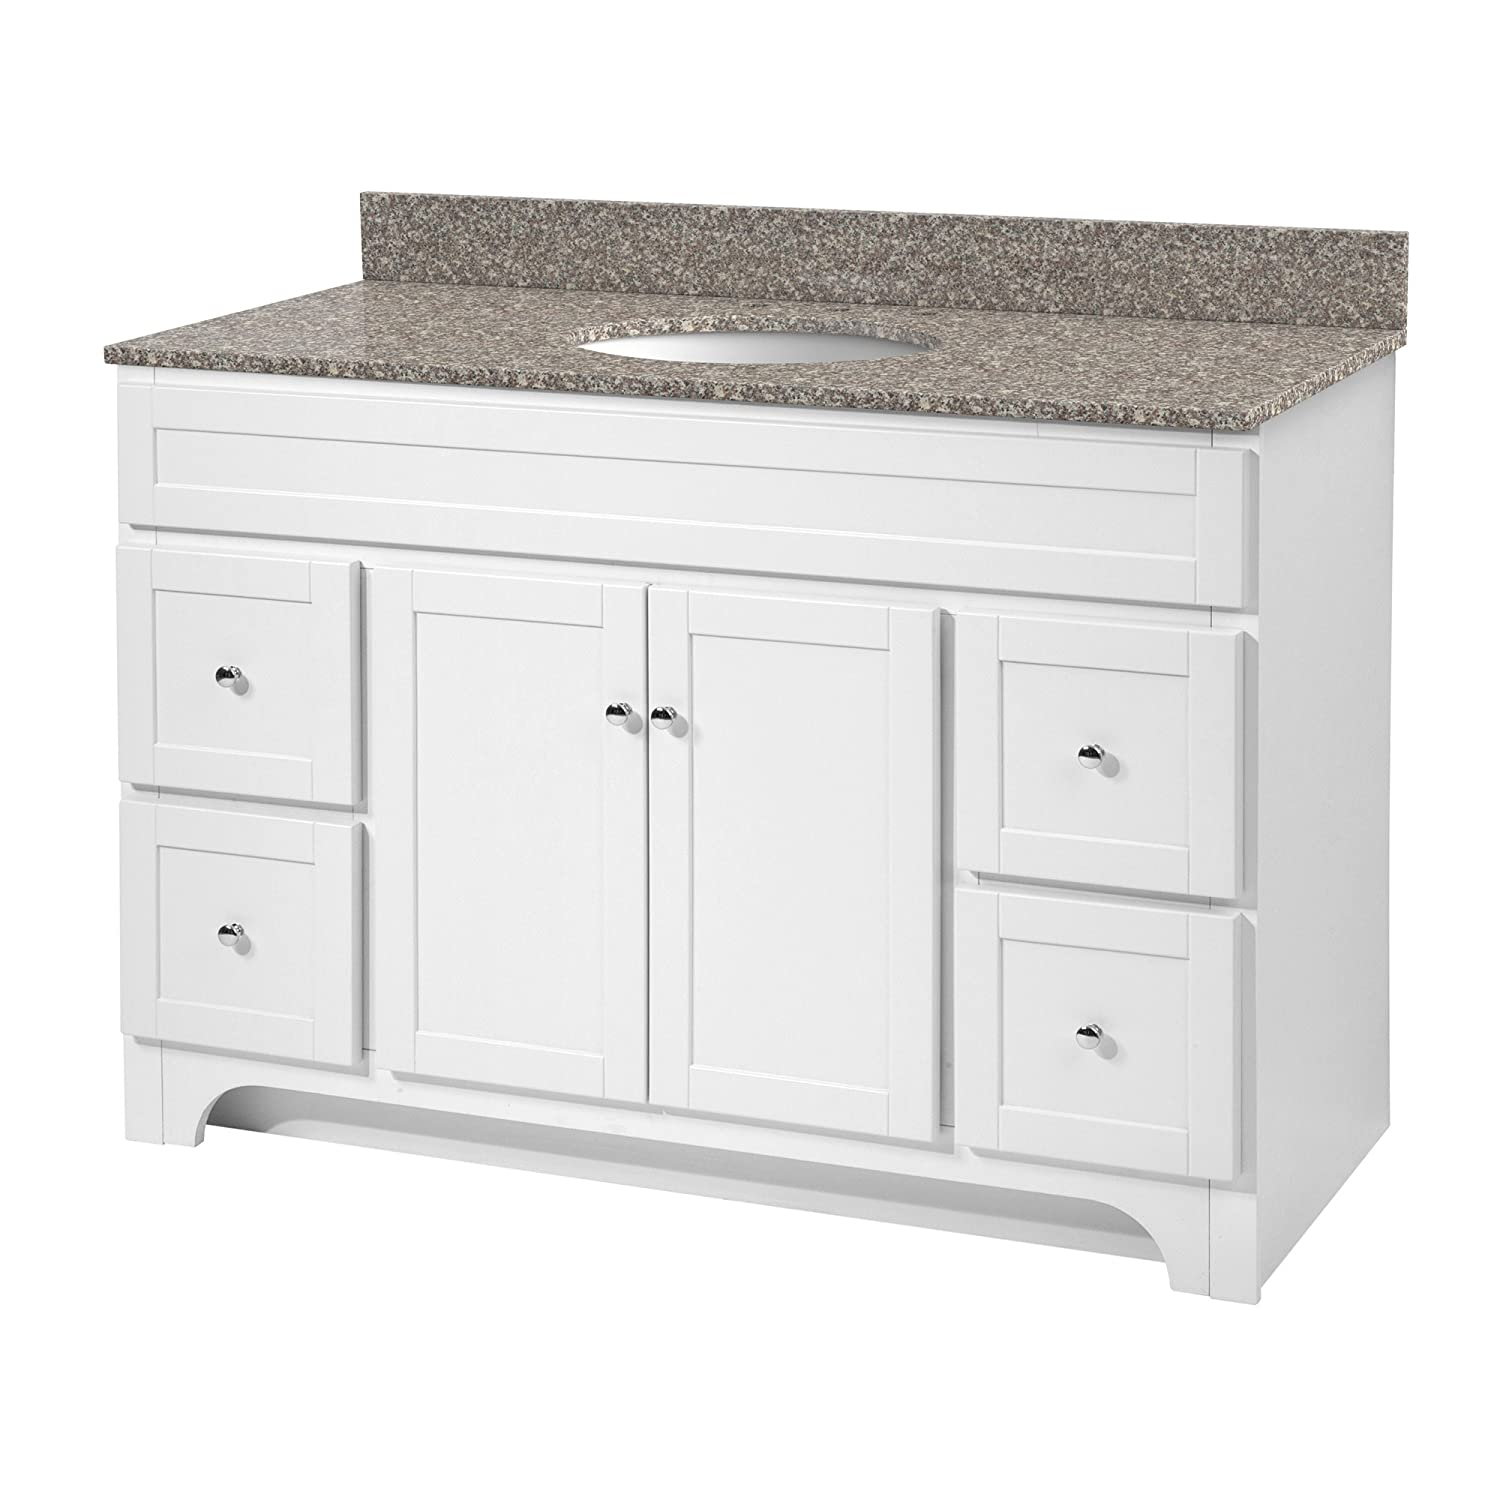 Foremost WRWA4821D Worthington 48-Inch White Bathroom Vanity Best